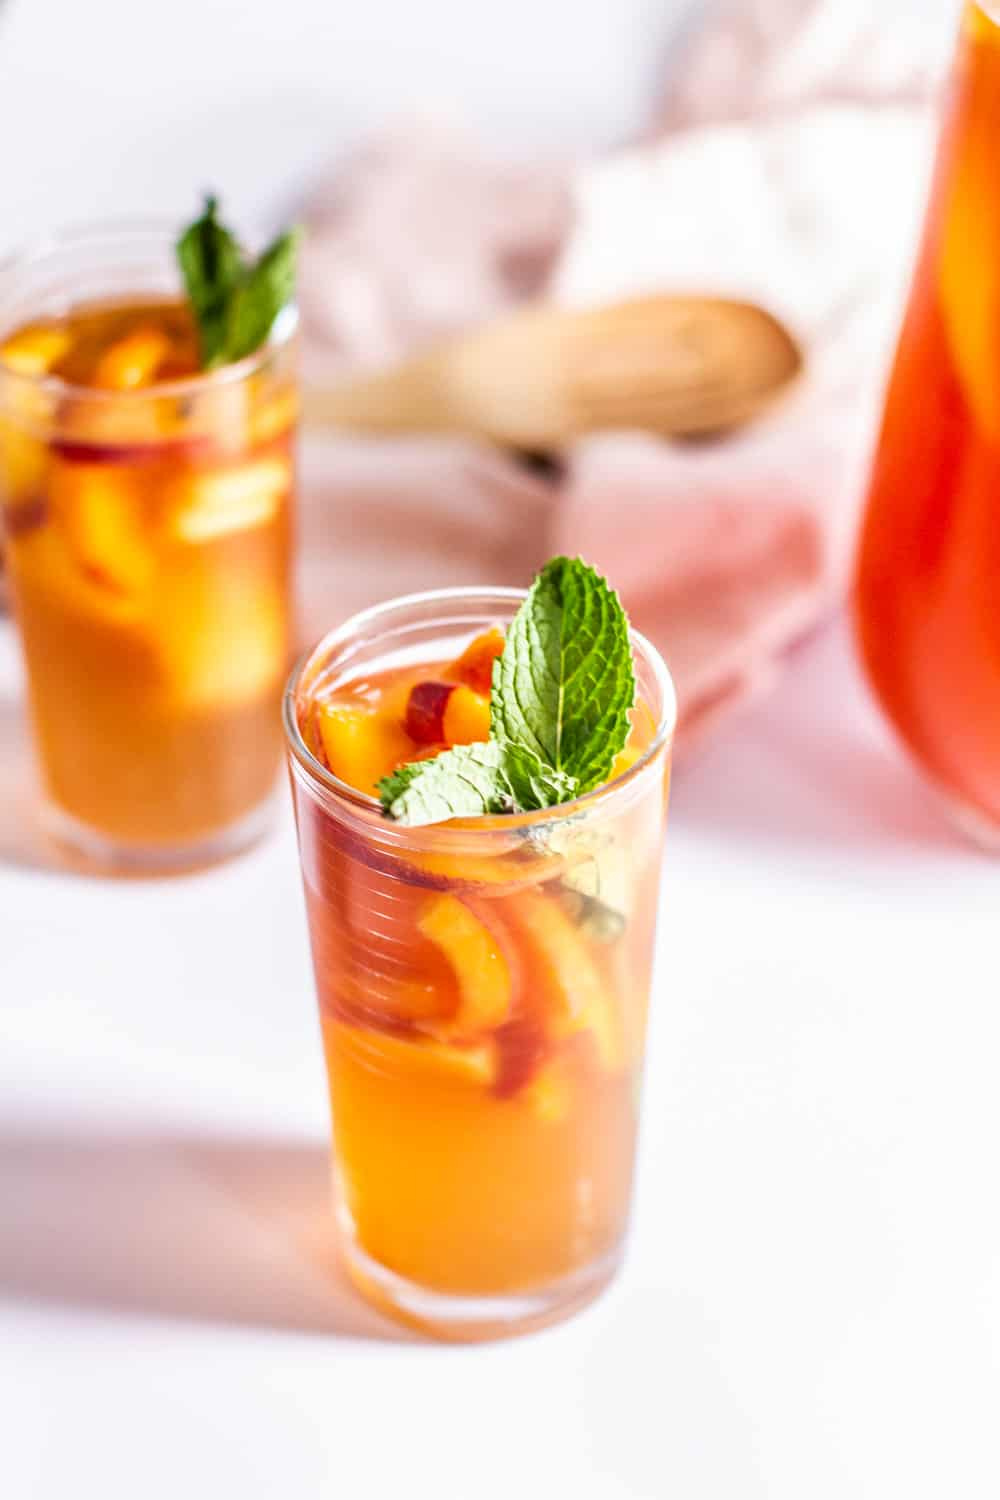 Glass of Peach Sweet Tea with mint